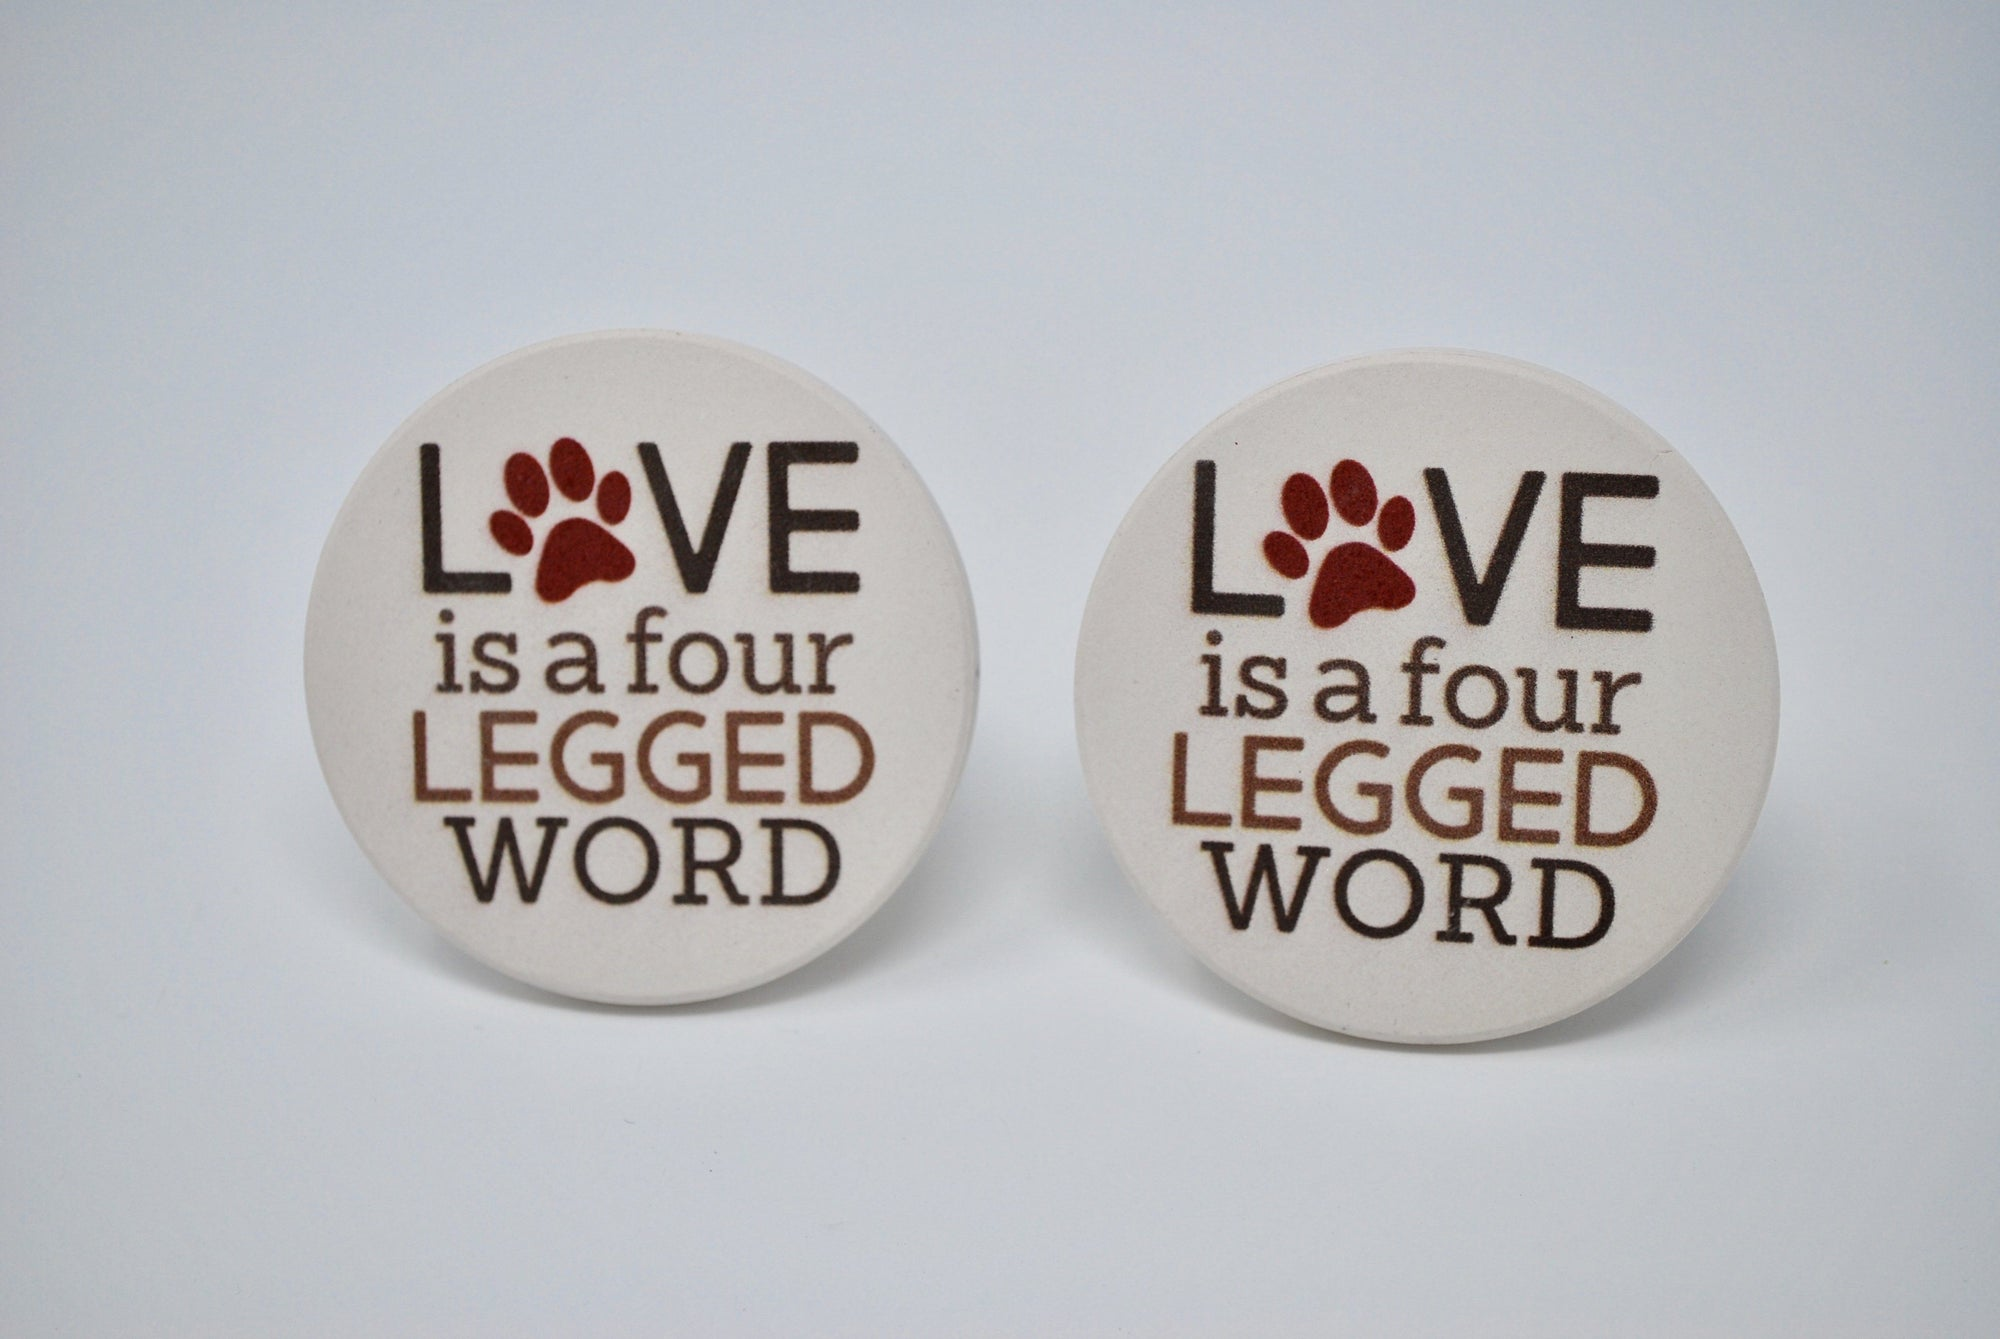 Pet Lover Gift, Paw Print Car Coasters, Absorbent Car Coasters, Love is a Four Legged Word, Pet Lover, Dog Mom, Dog Dad, Cat Lover, Paw print Coasters